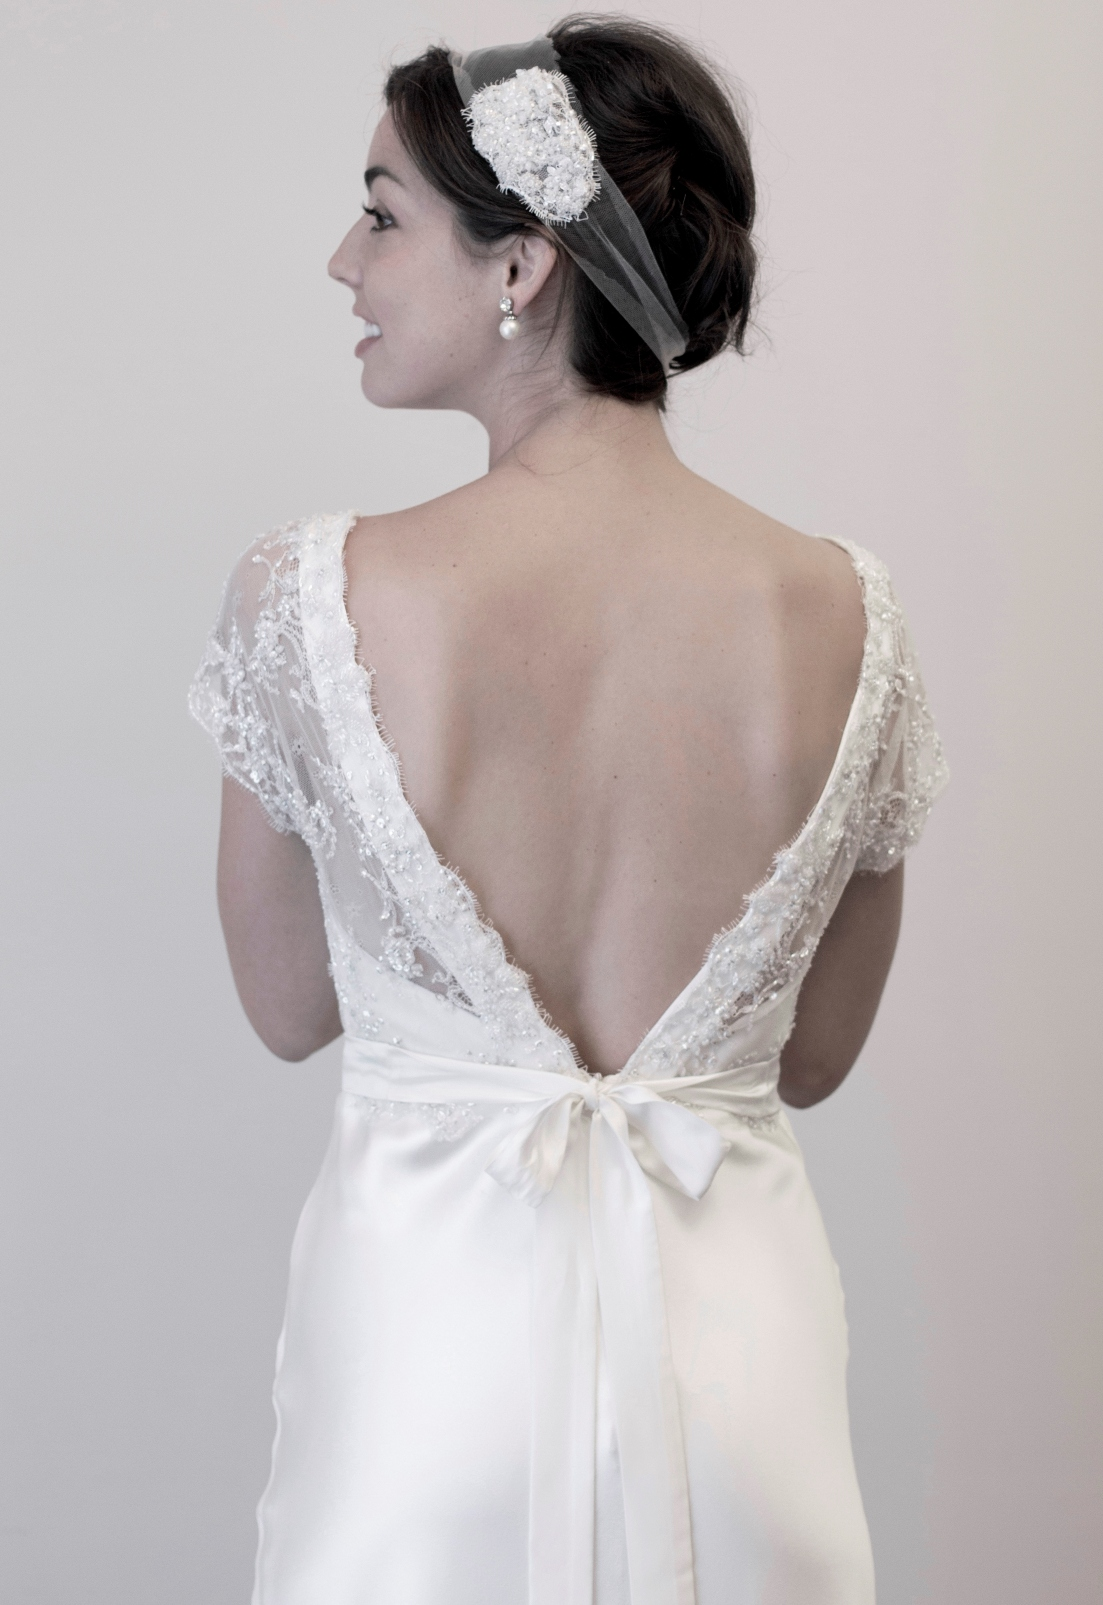 Rose & Delilah's Petot Wedding Dress